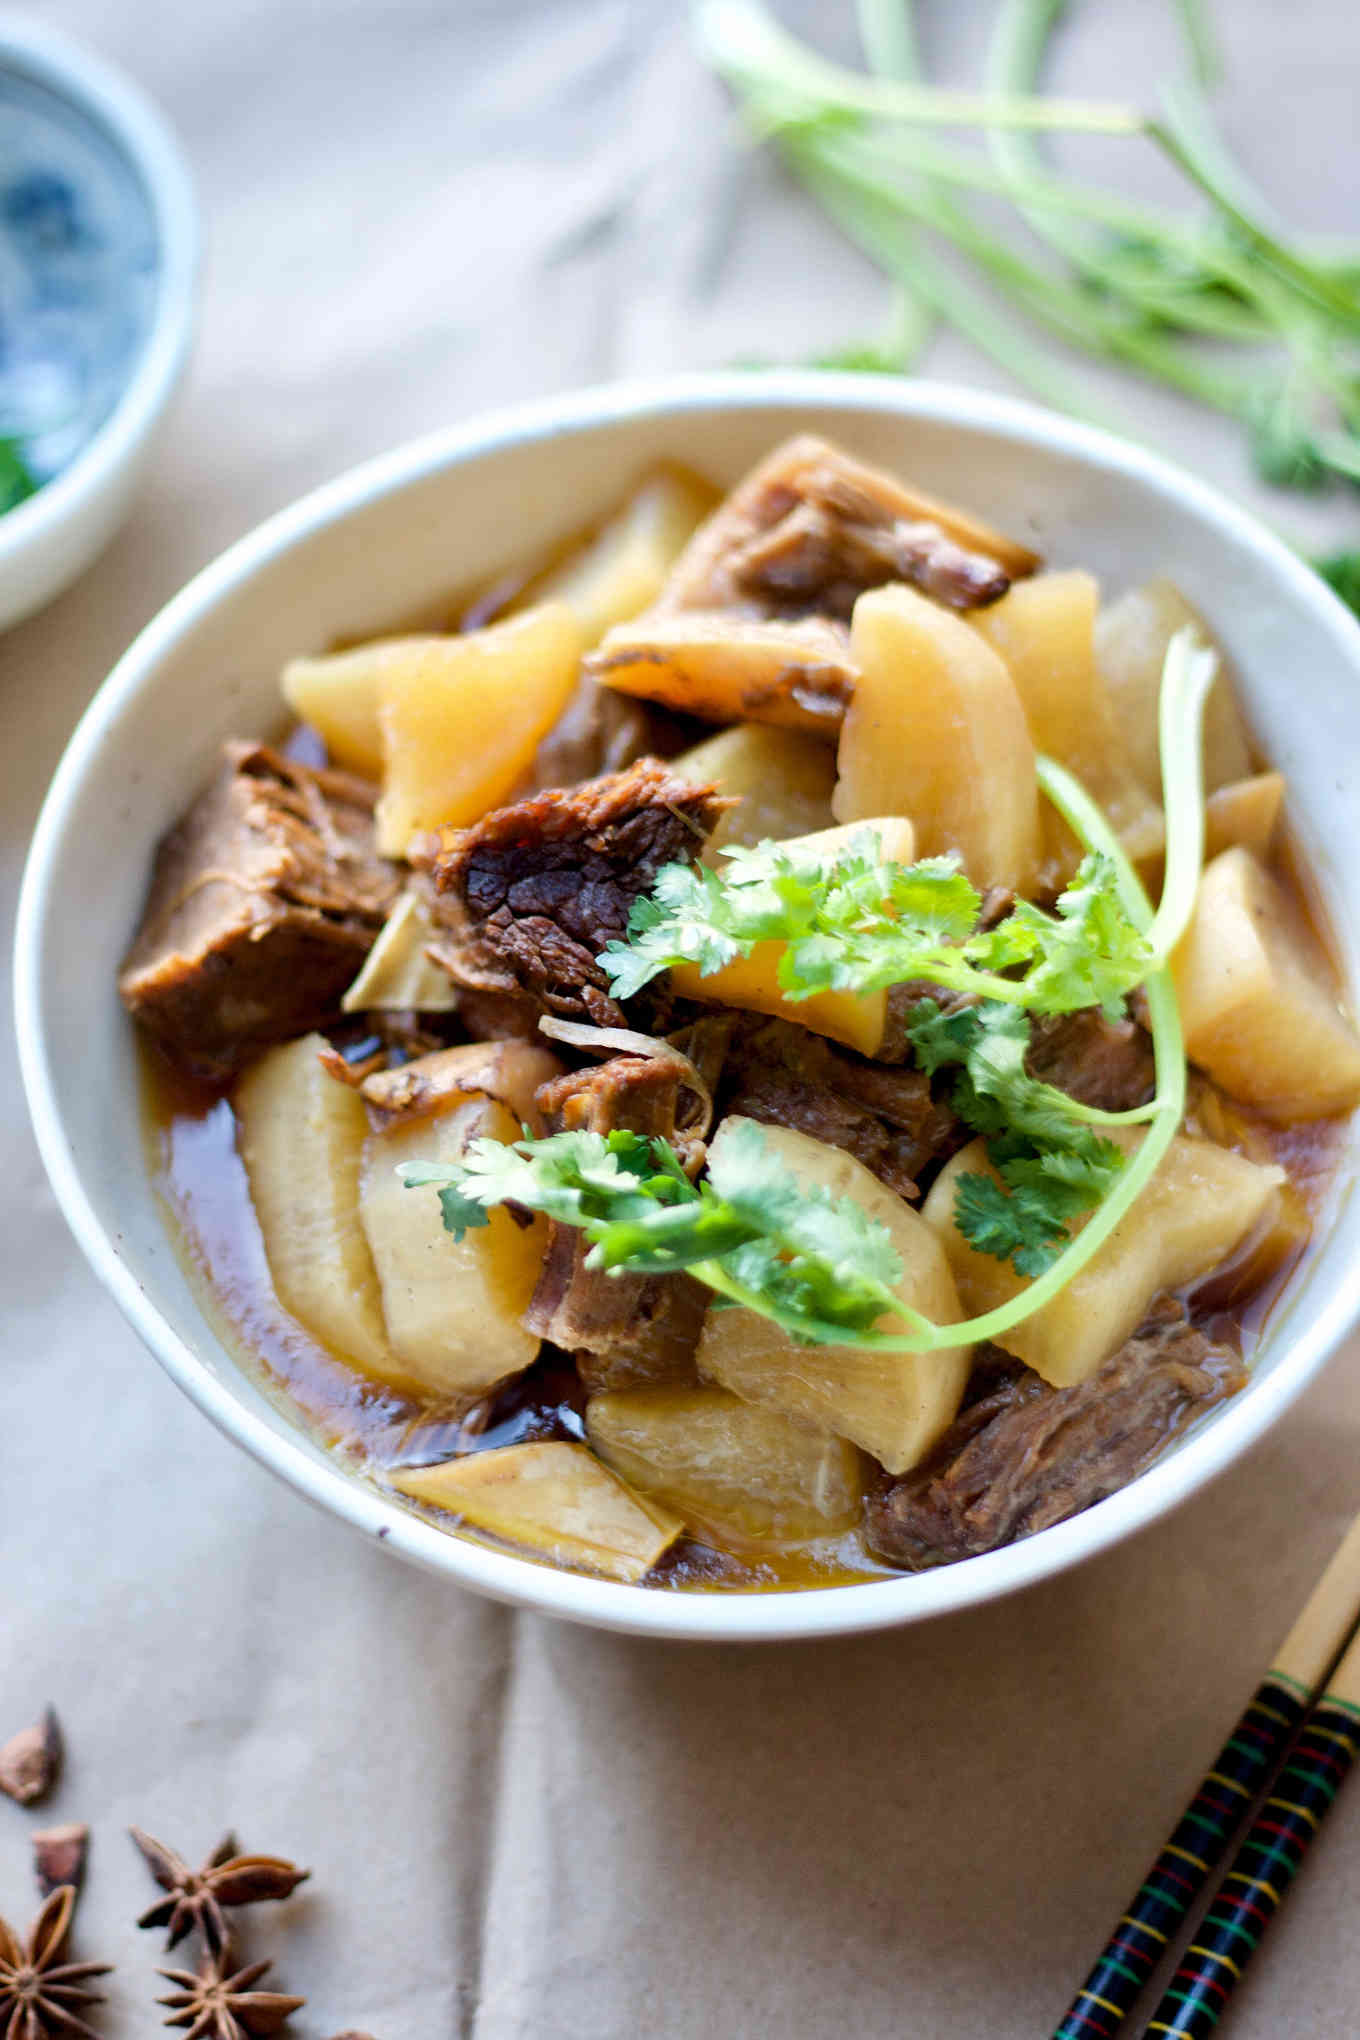 Instant Pot beef brisket stew with daikon radish, served in a bowl.